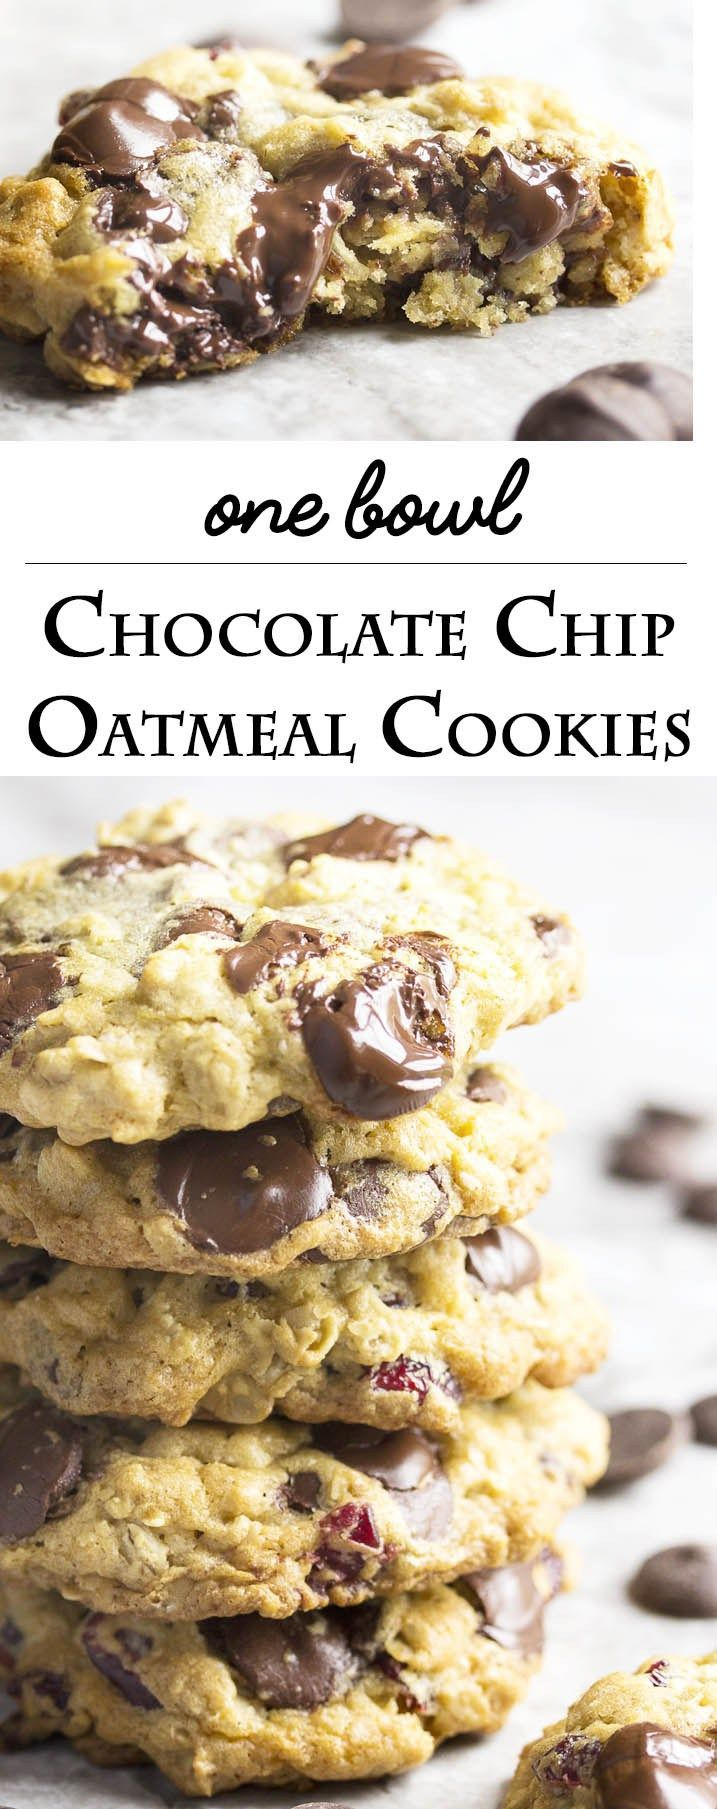 One Bowl Chocolate Cherry Oatmeal Cookies - This recipe for one bowl gooey, chocolatey, cherry studded oatmeal cookies is so easy to make that you'll want to bake them right now. And you should because they are as tasty as they are easy. | justalittlebitofb...